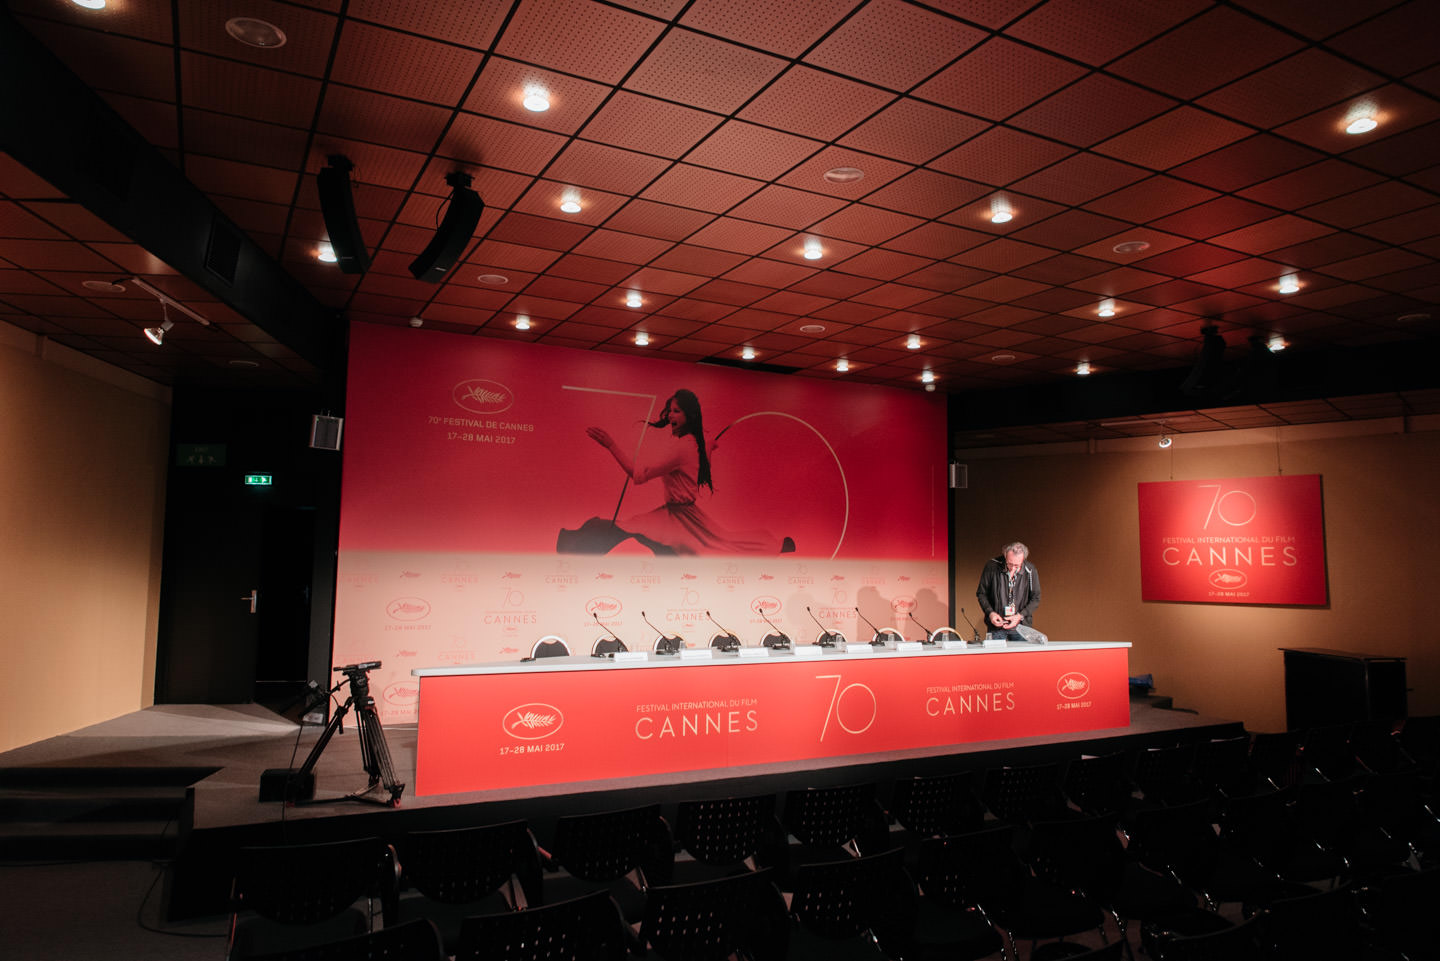 Blog-Mode-And-The-City-Lifestyle-cannes-Mastercard-27